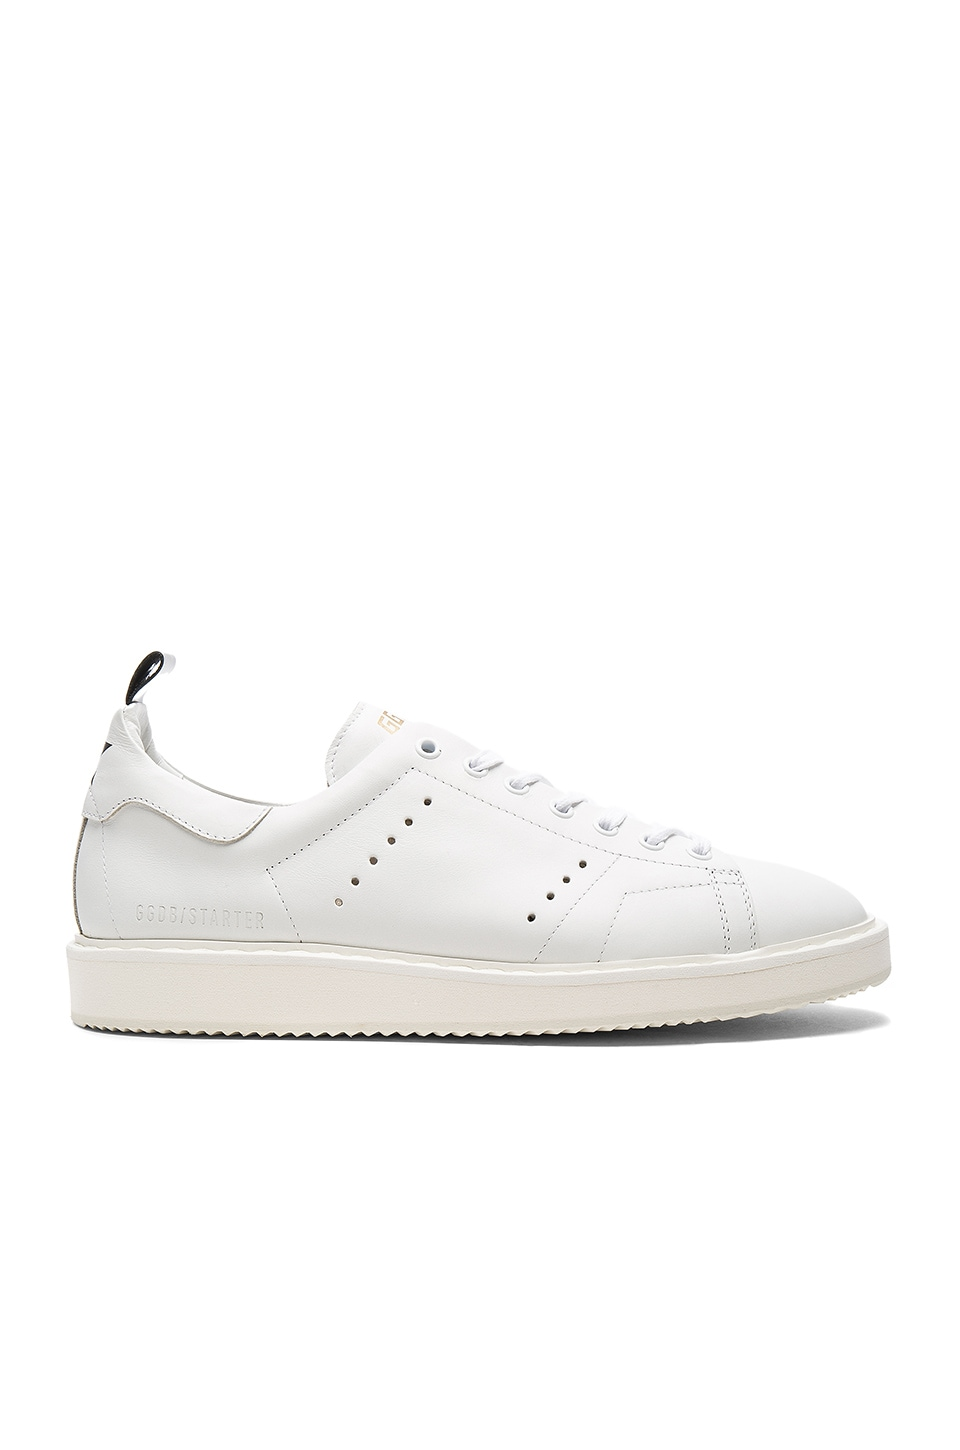 Photo of Starter Sneakers by Golden Goose men clothes